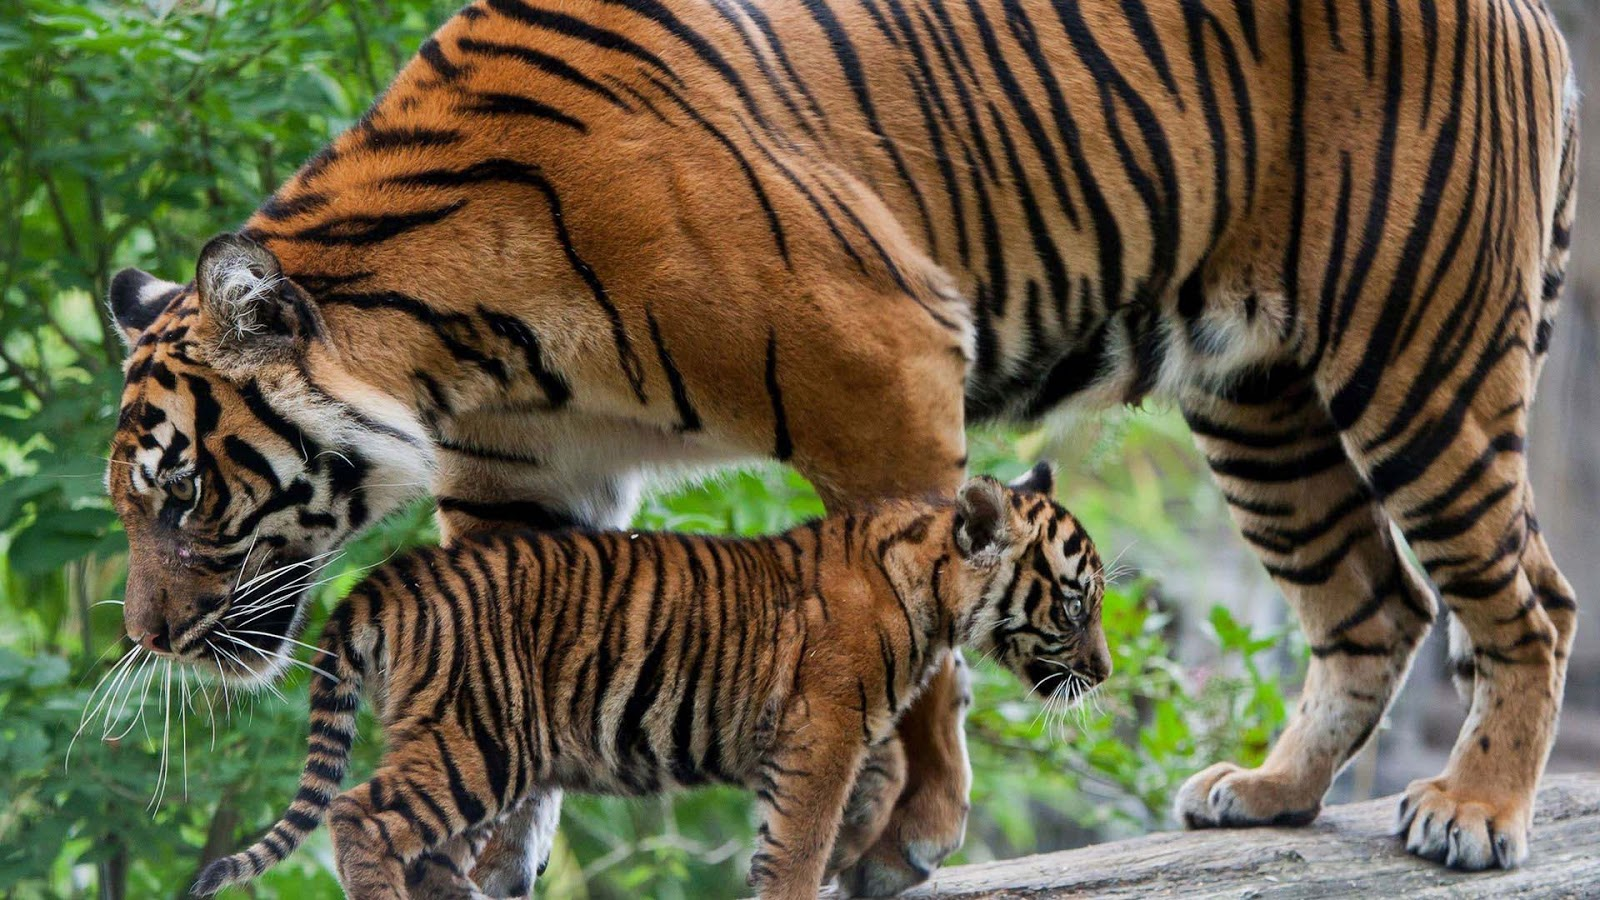 Cute Baby Collection Wallpaper Tiger Wallpapers Allfreshwallpaper